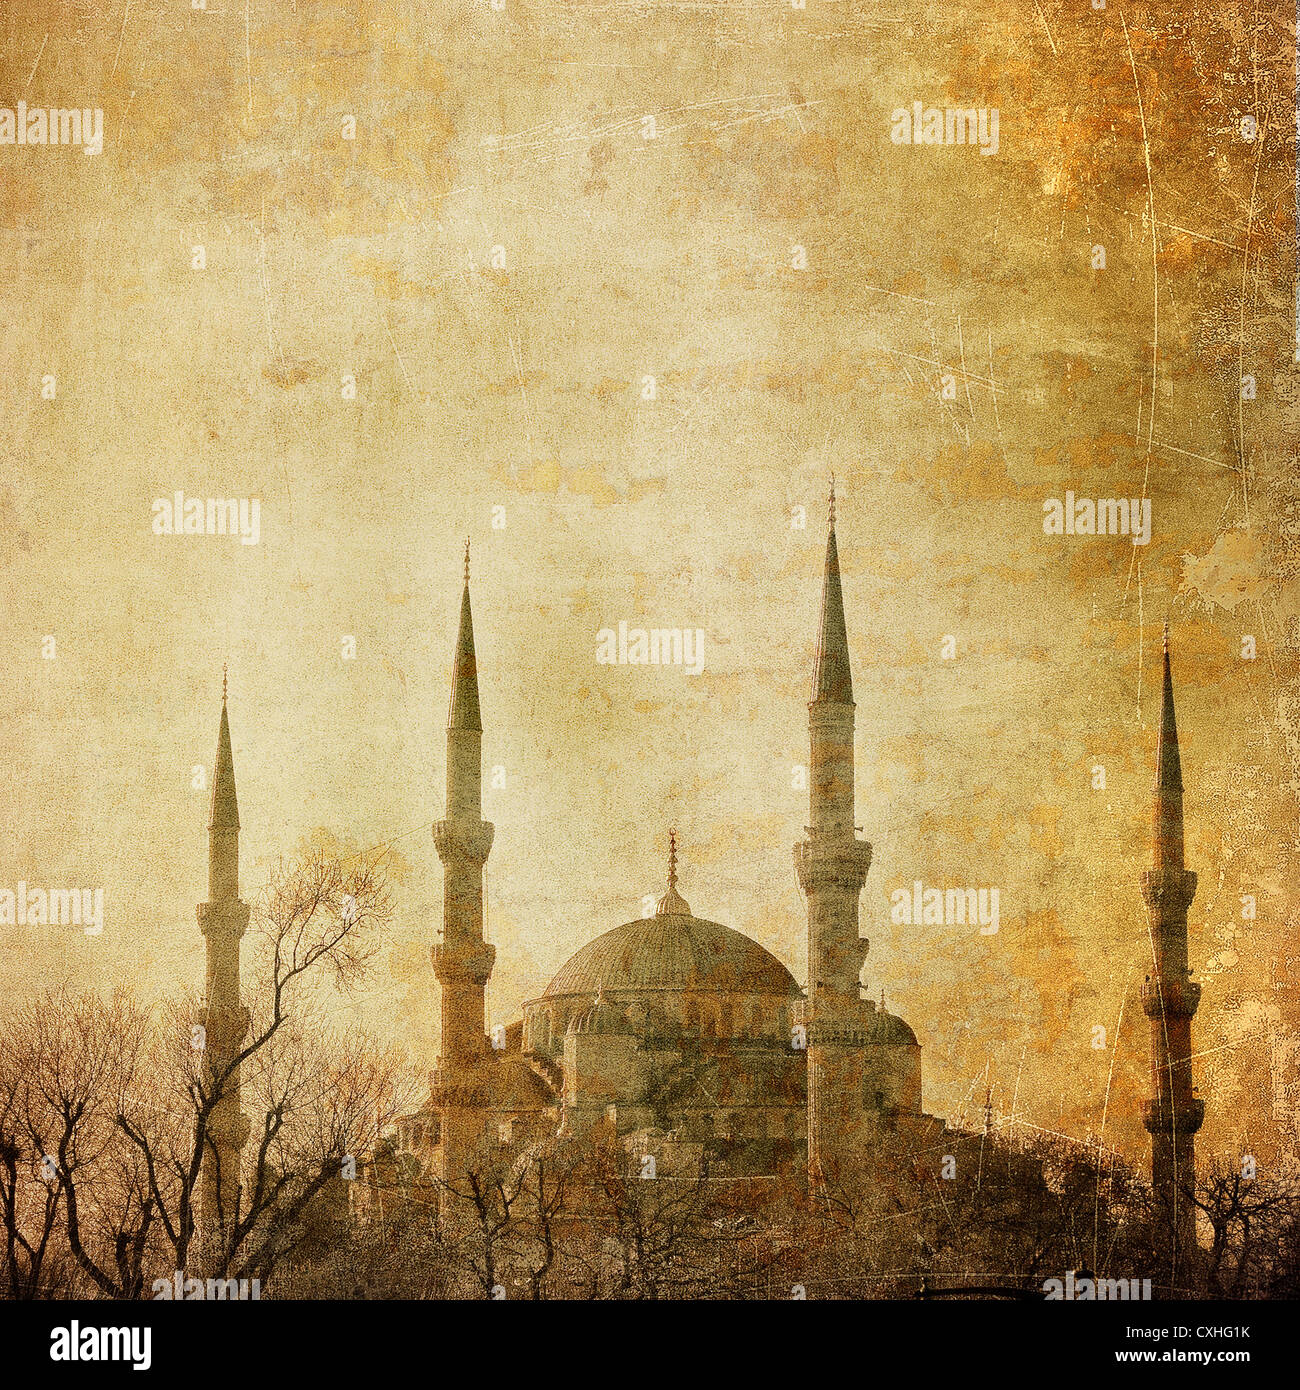 Vintage image of Blue Mosque, Istambul - Stock Image